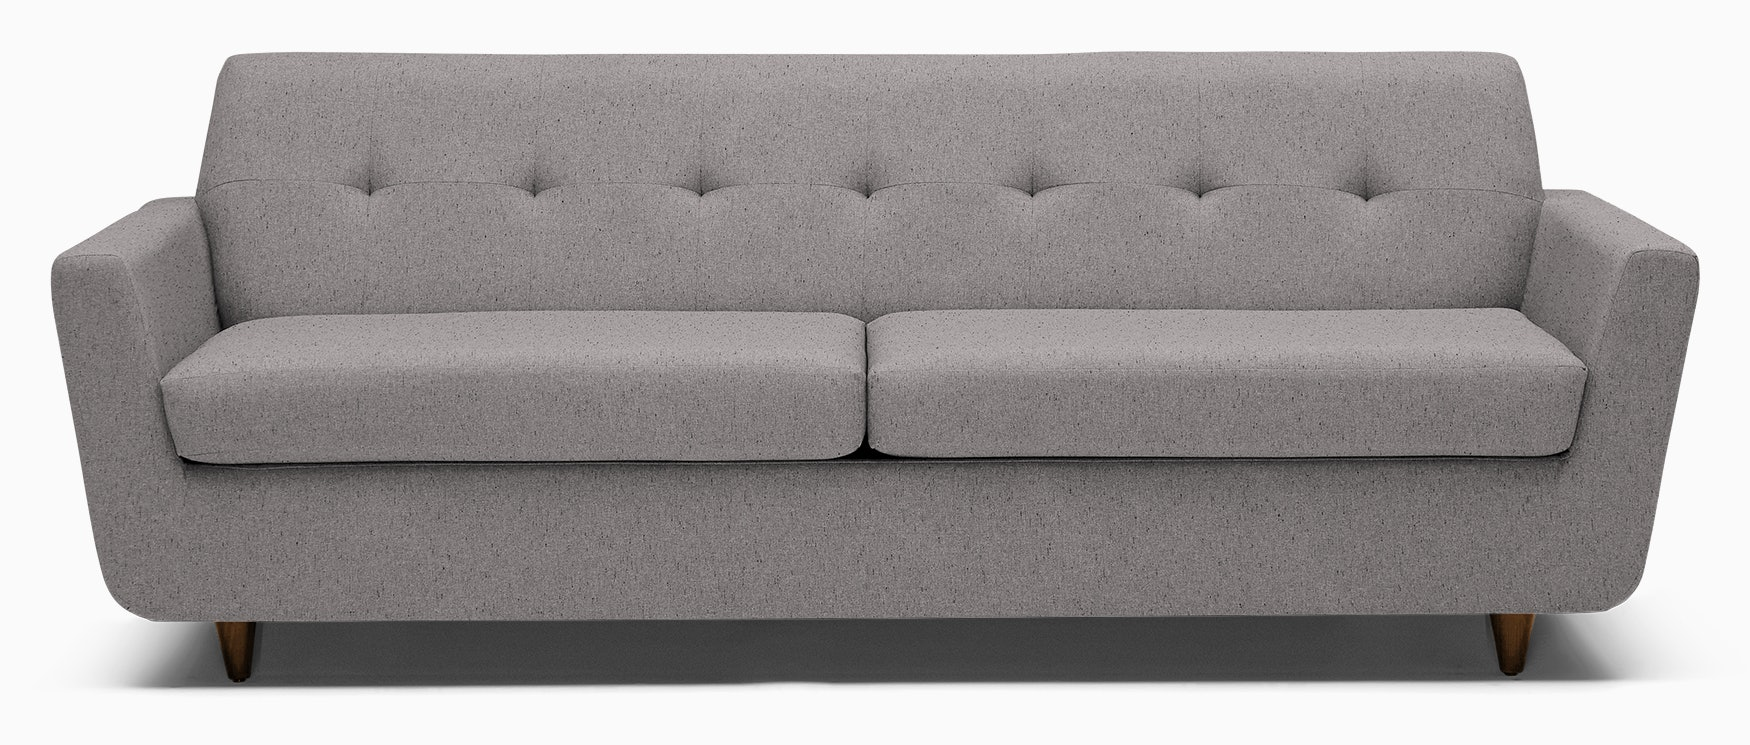 Hughes Sleeper Sofa Joybird